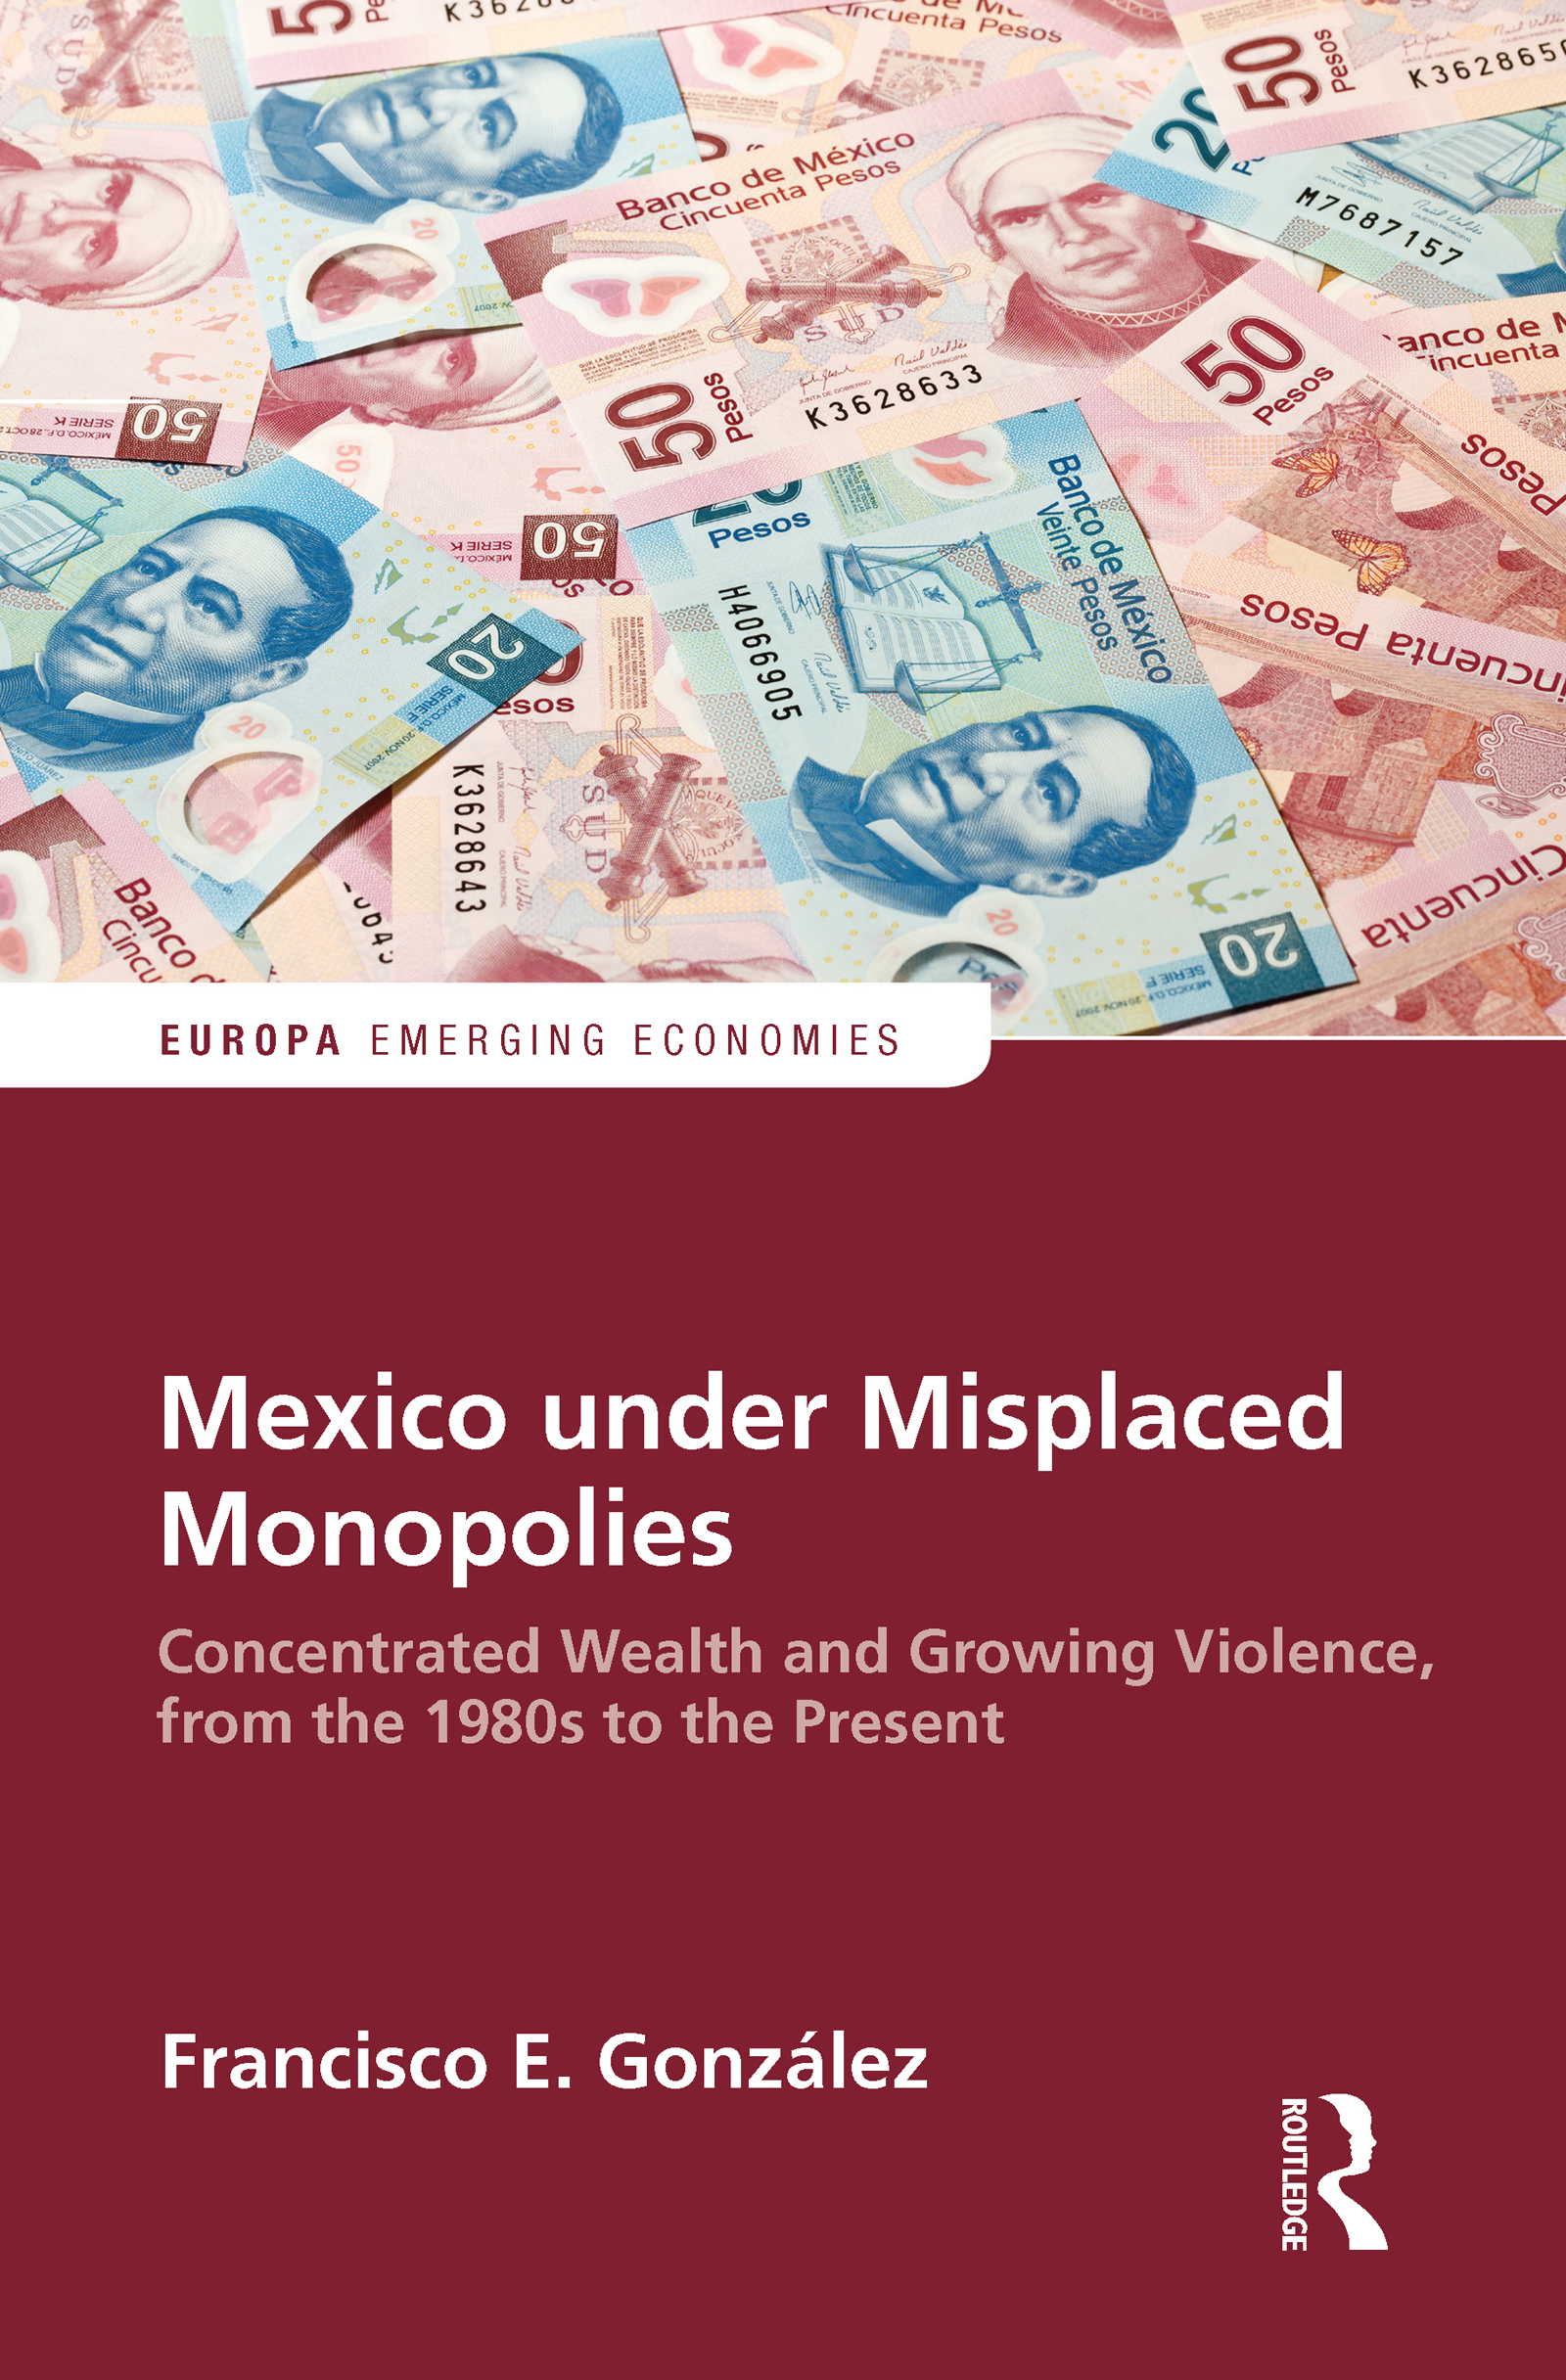 Mexico under Misplaced Monopolies